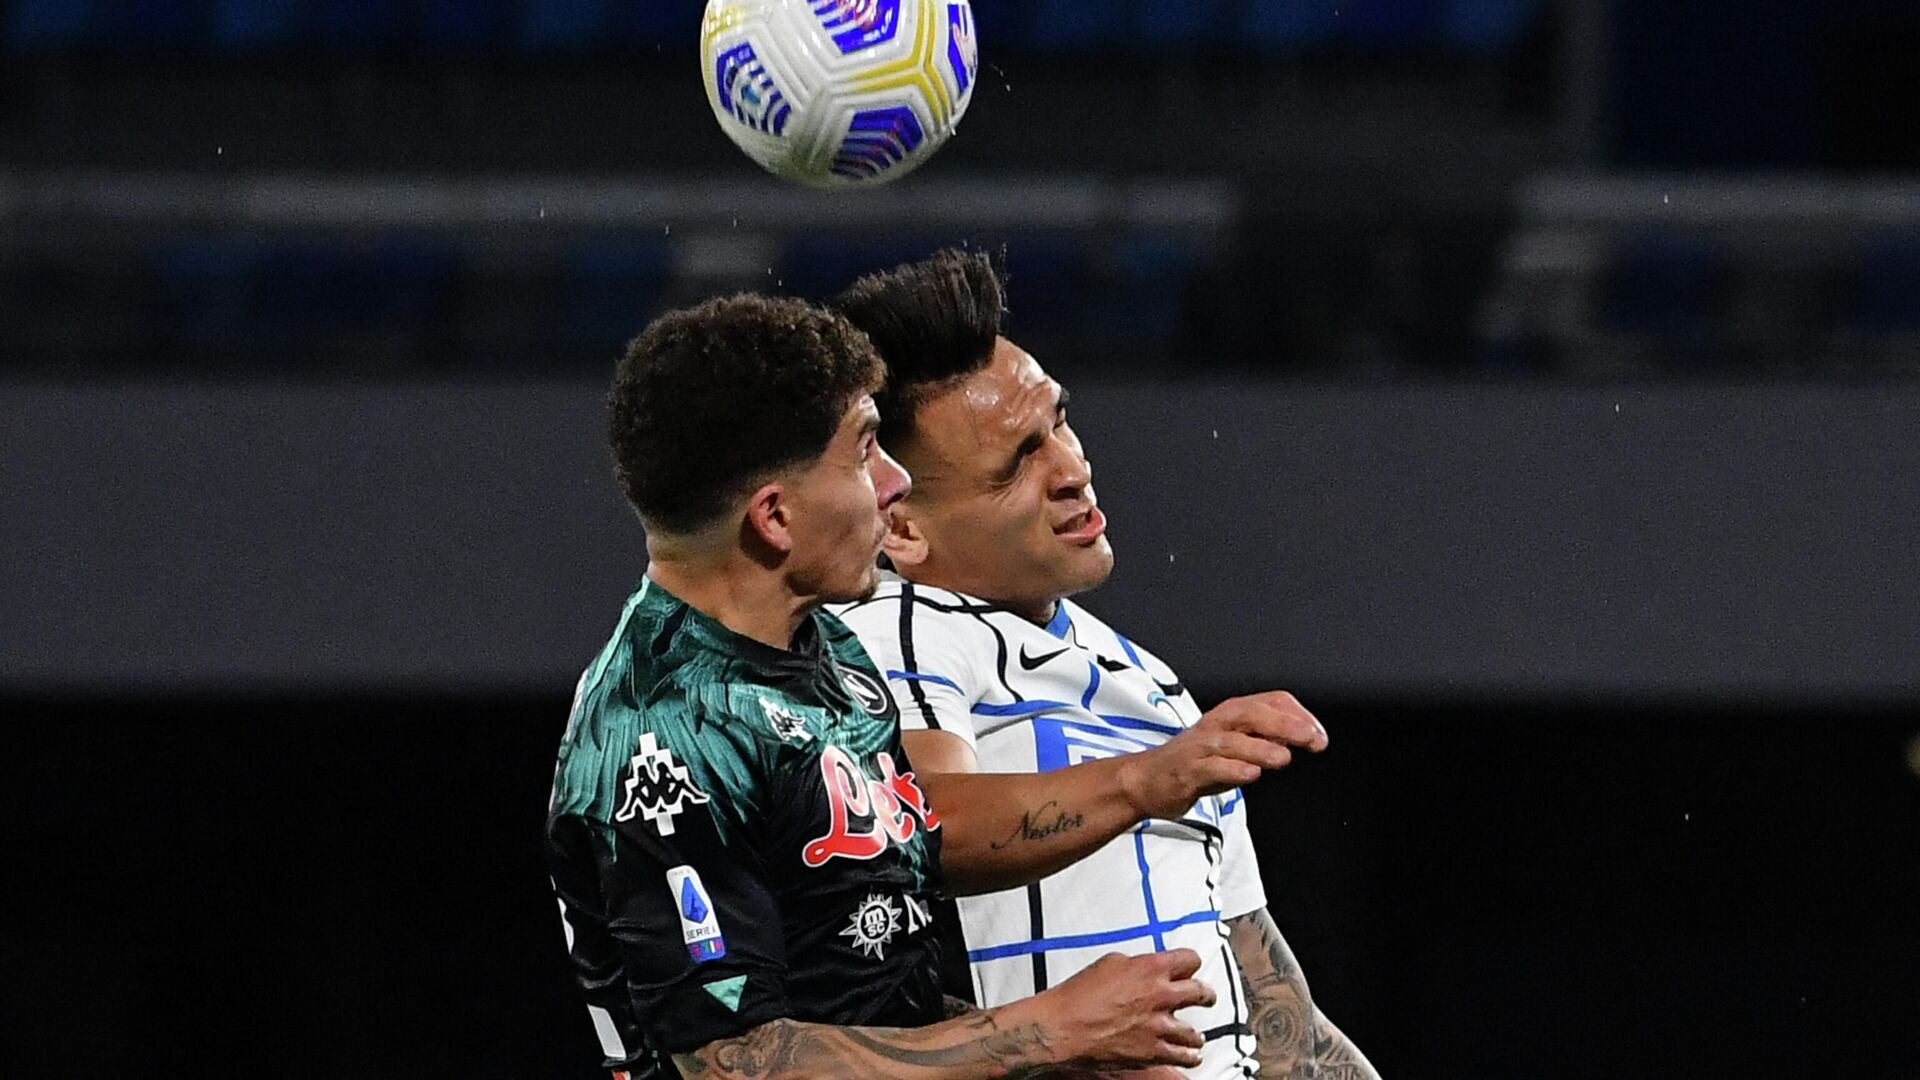 Napoli's Italian defender Giovanni Di Lorenzo (L) and Inter Milan's Argentine forward Lautaro Martinez go for a header during the Italian Serie A football match Napoli vs Inter on April 18, 2021 at the Diego Maradona (San Paolo) stadium in Naples. (Photo by Tiziana FABI / AFP) - РИА Новости, 1920, 18.04.2021